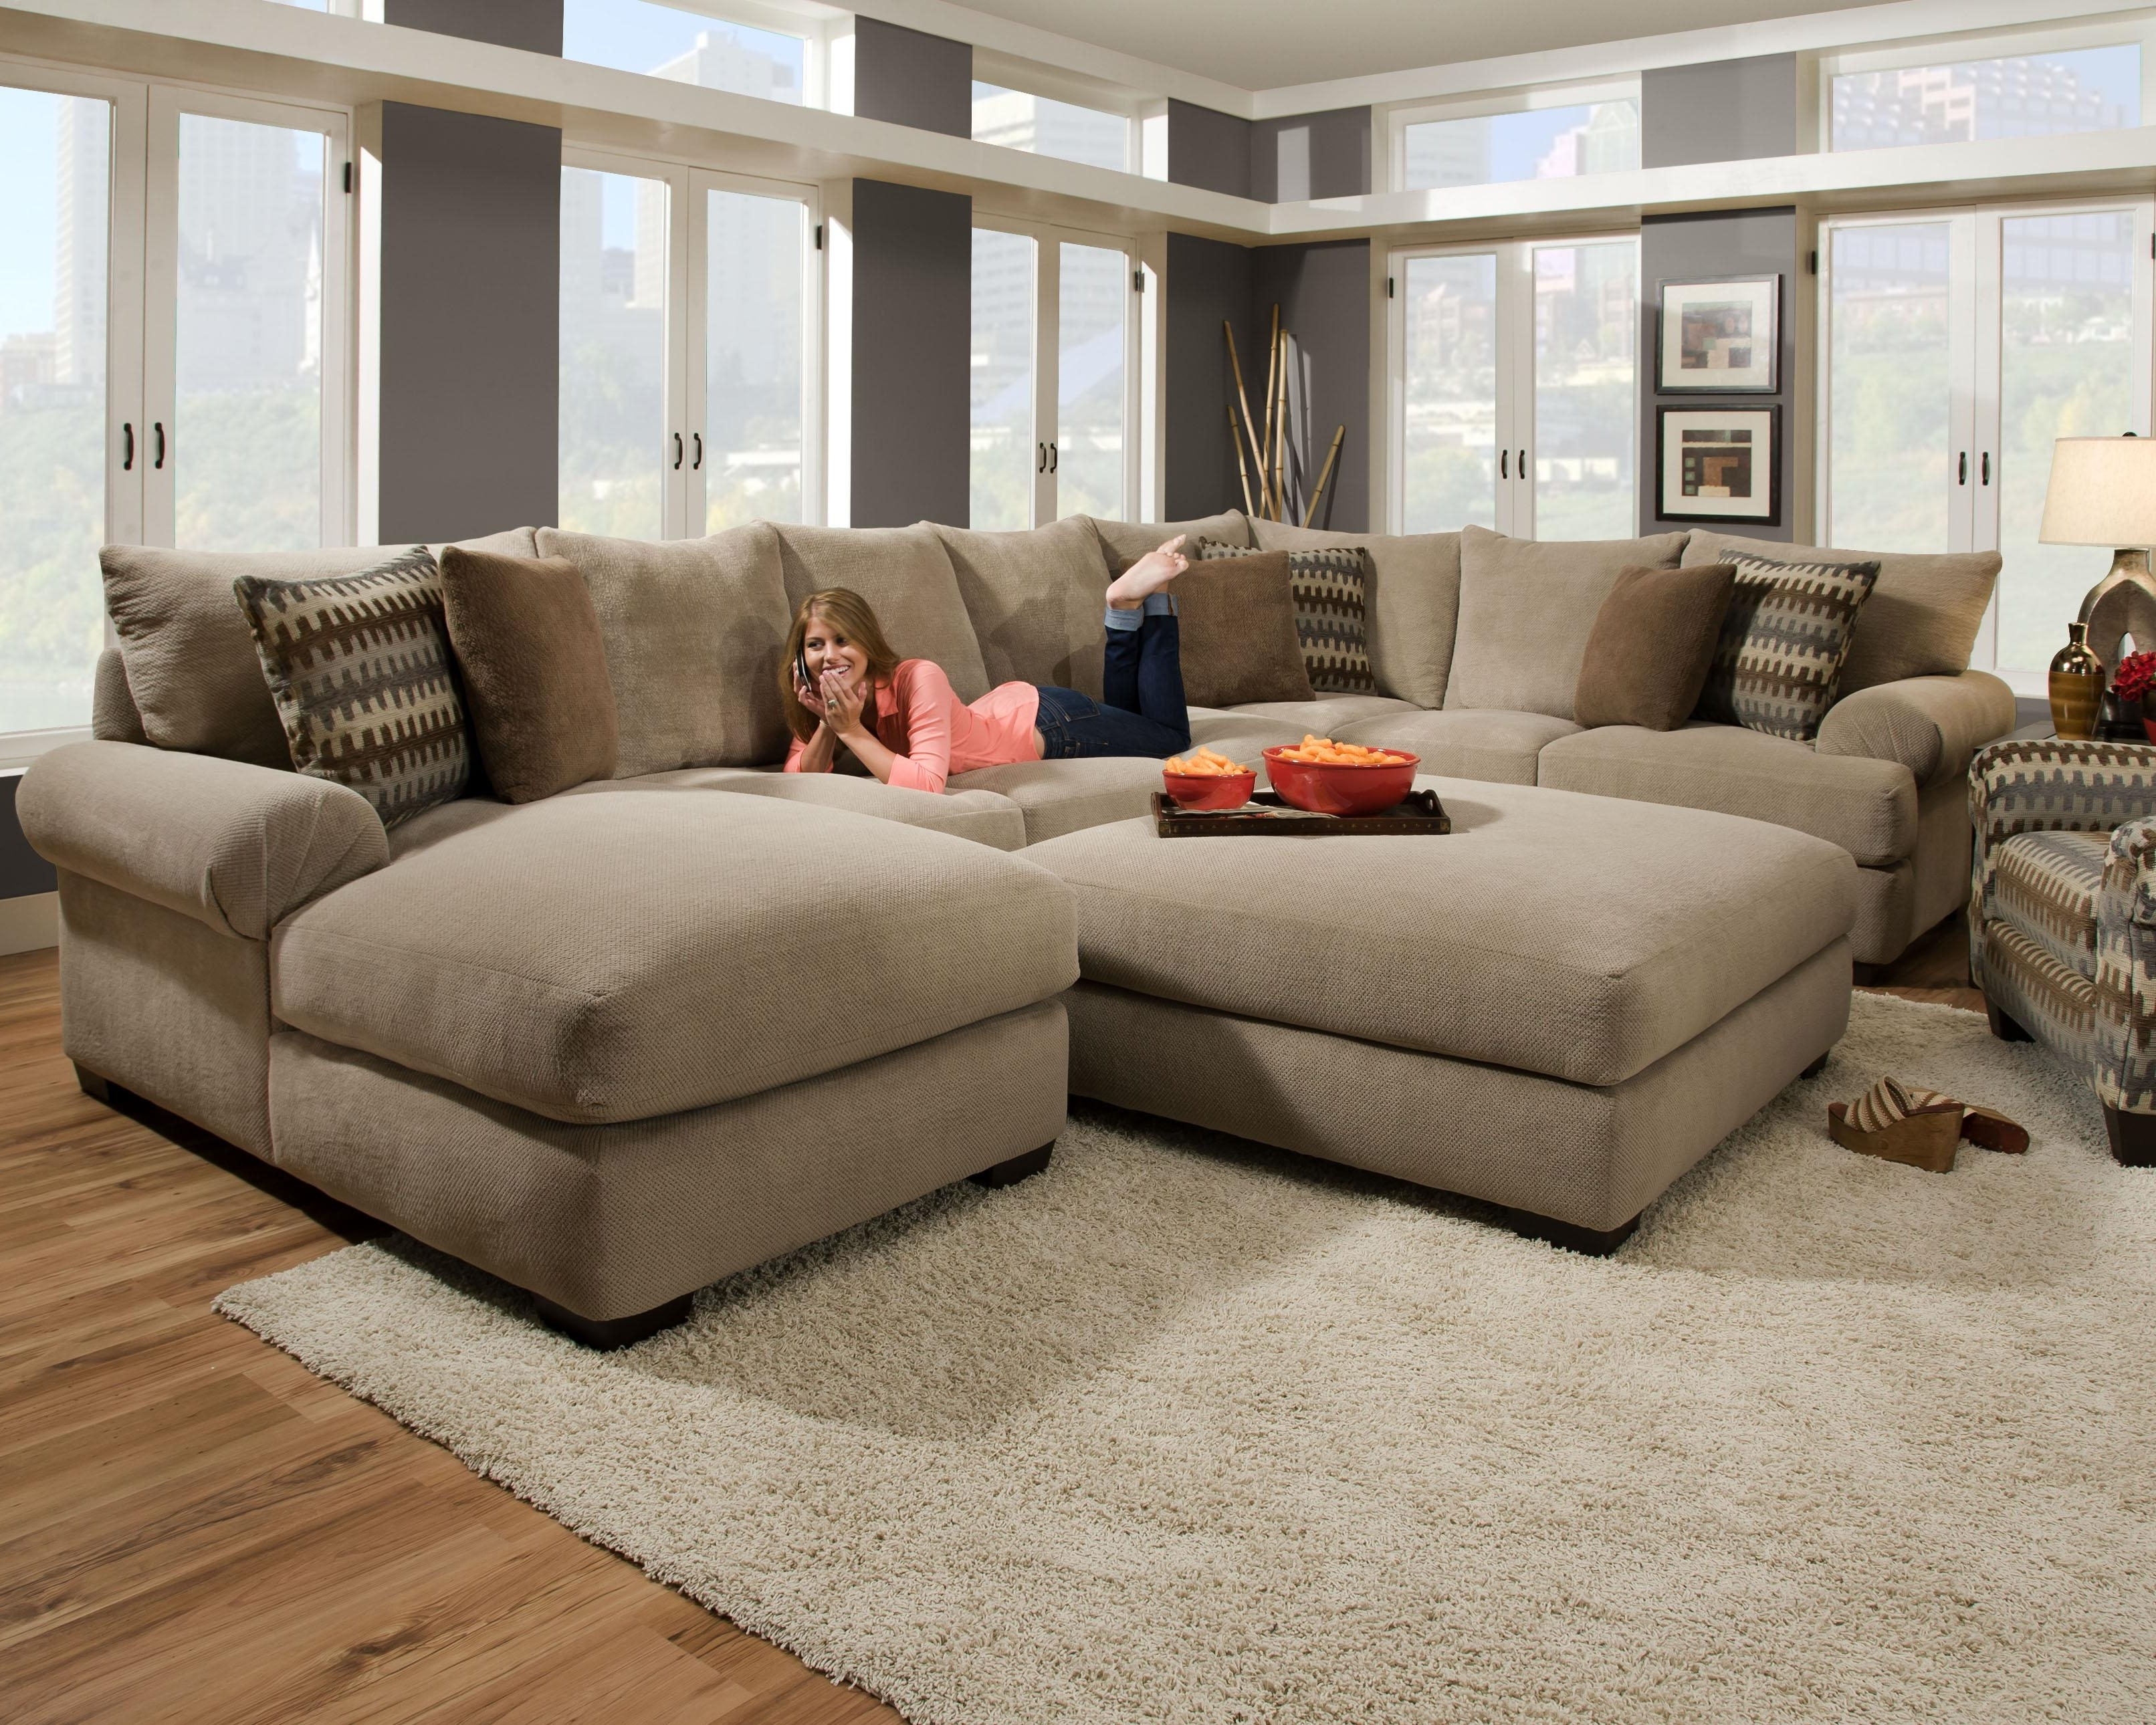 Sofas : Oversized Sofa Cheap Sectional Sofas Chaise Sofa Modular With Regard To Best And Newest Cheap Sectionals With Ottoman (View 12 of 20)